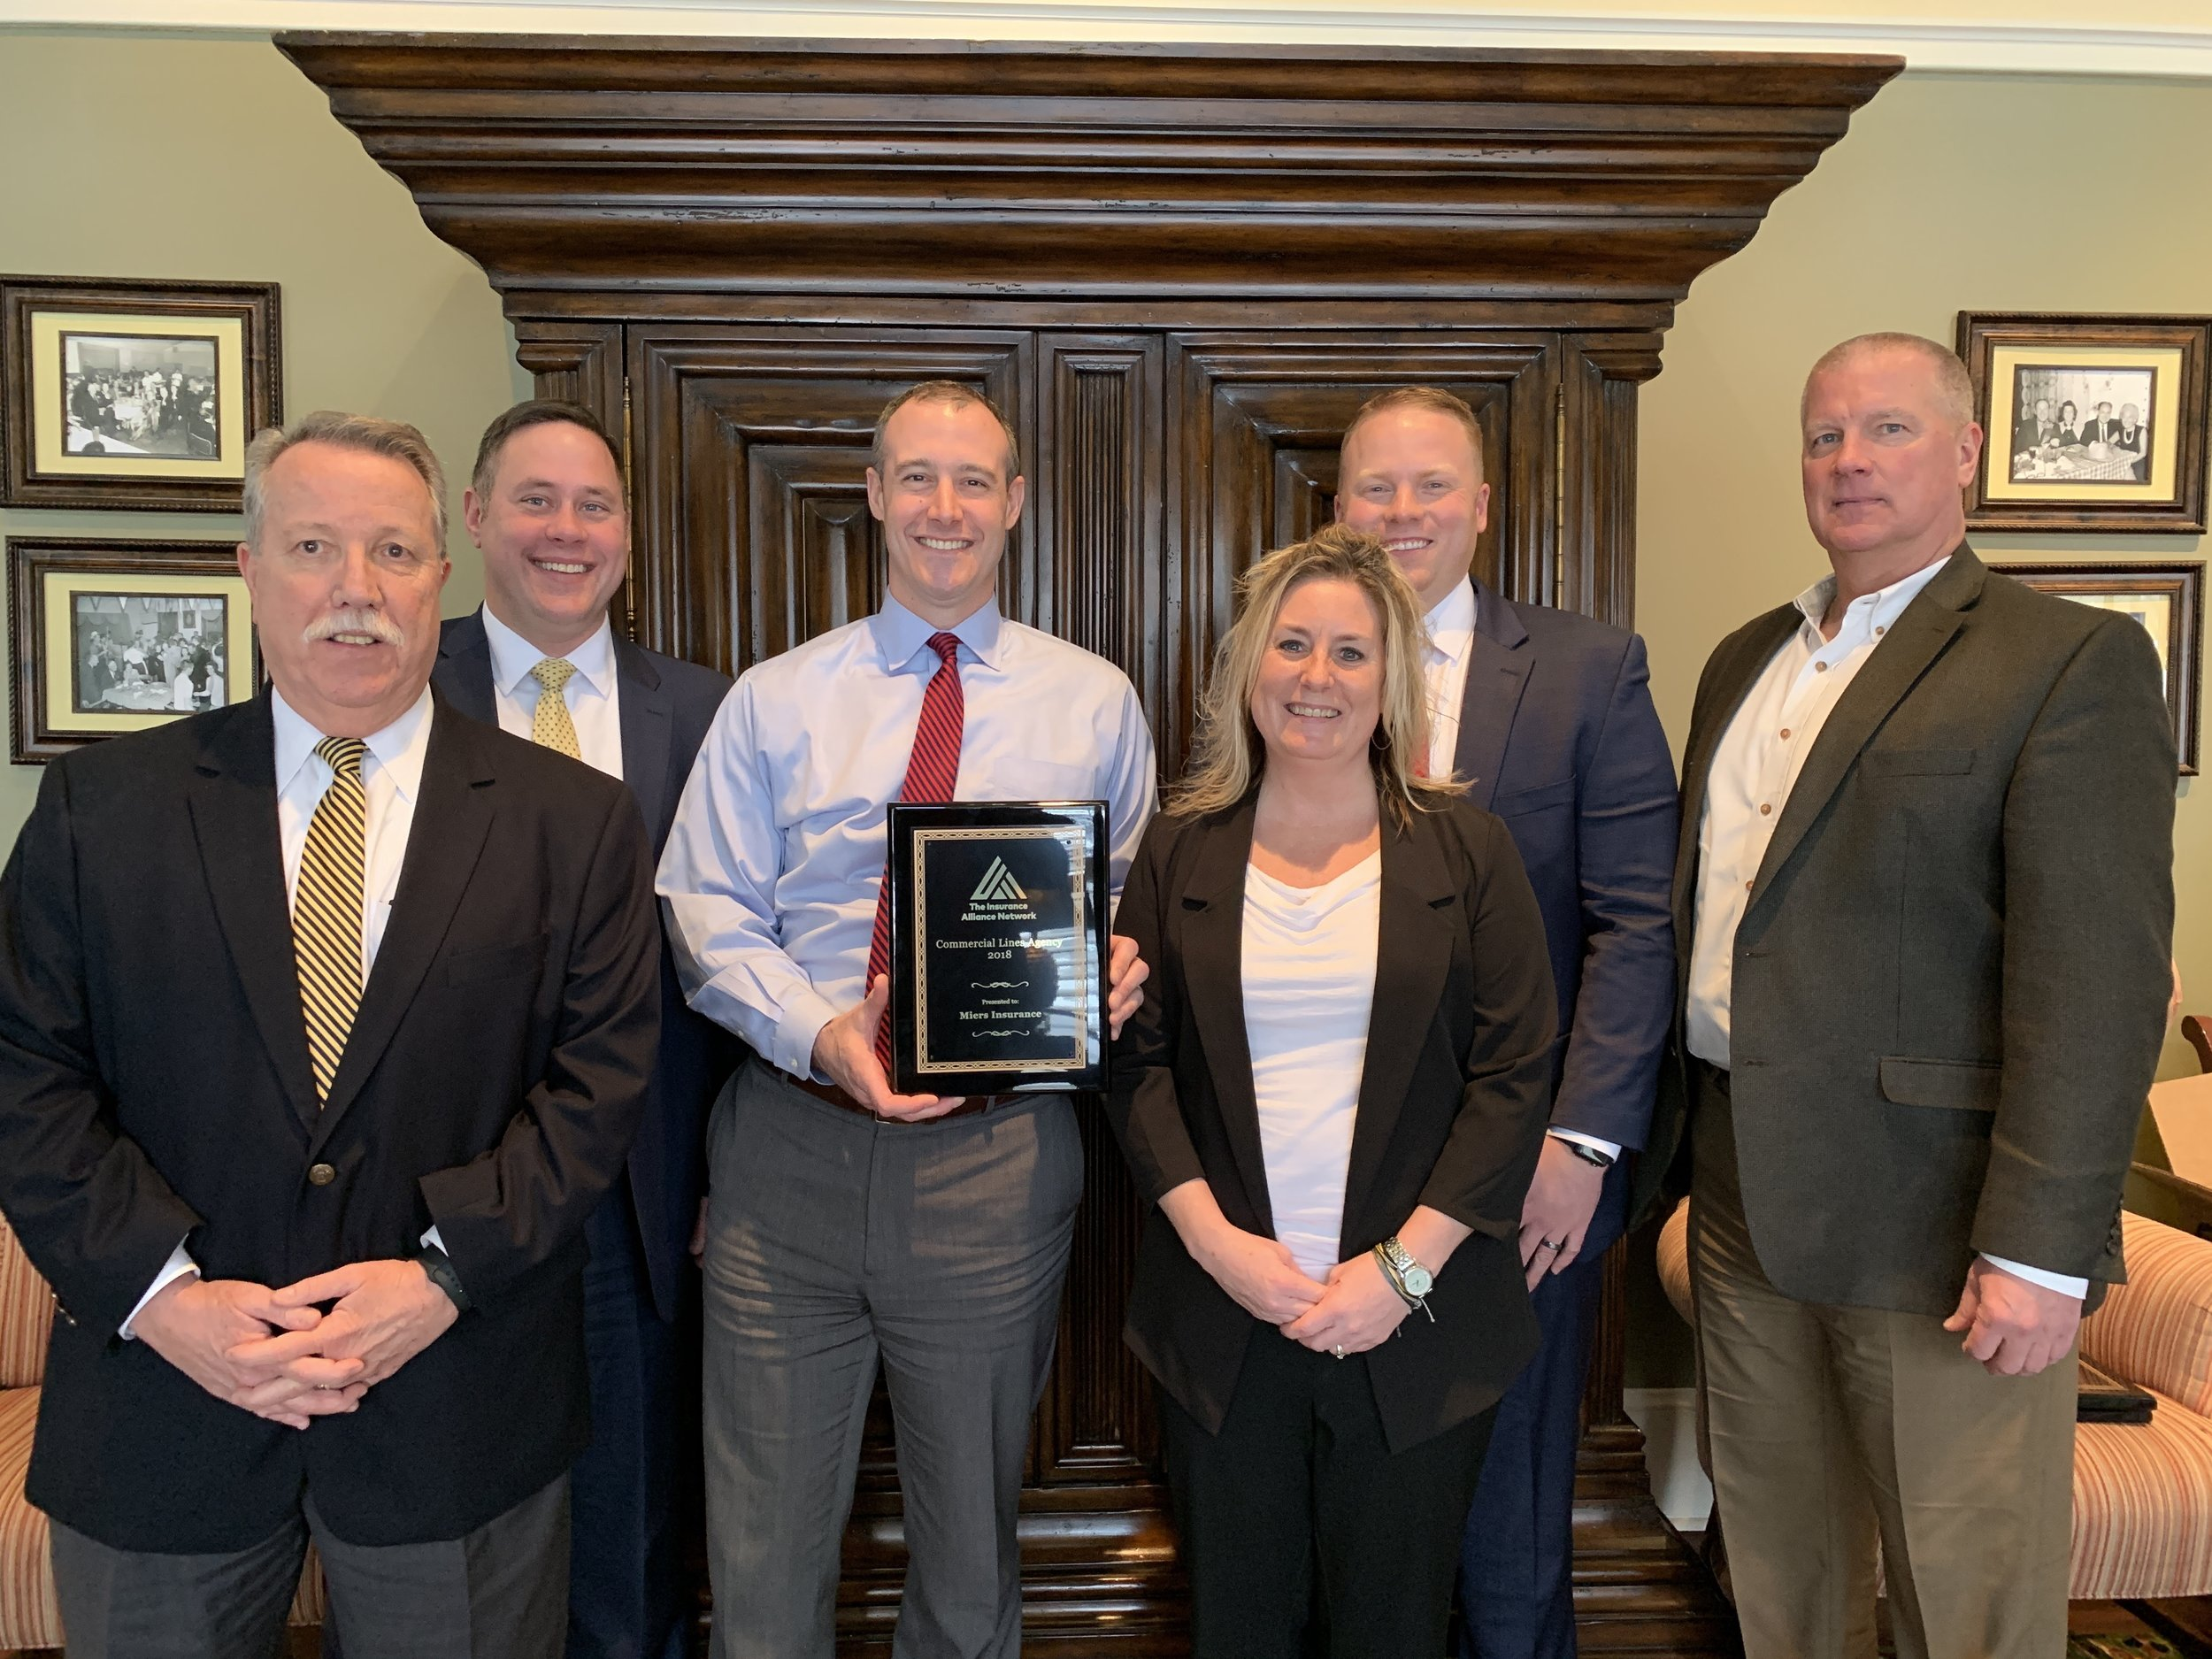 Miers Insurance was honored as the 2018 Commercial Lines Agency of the Year.